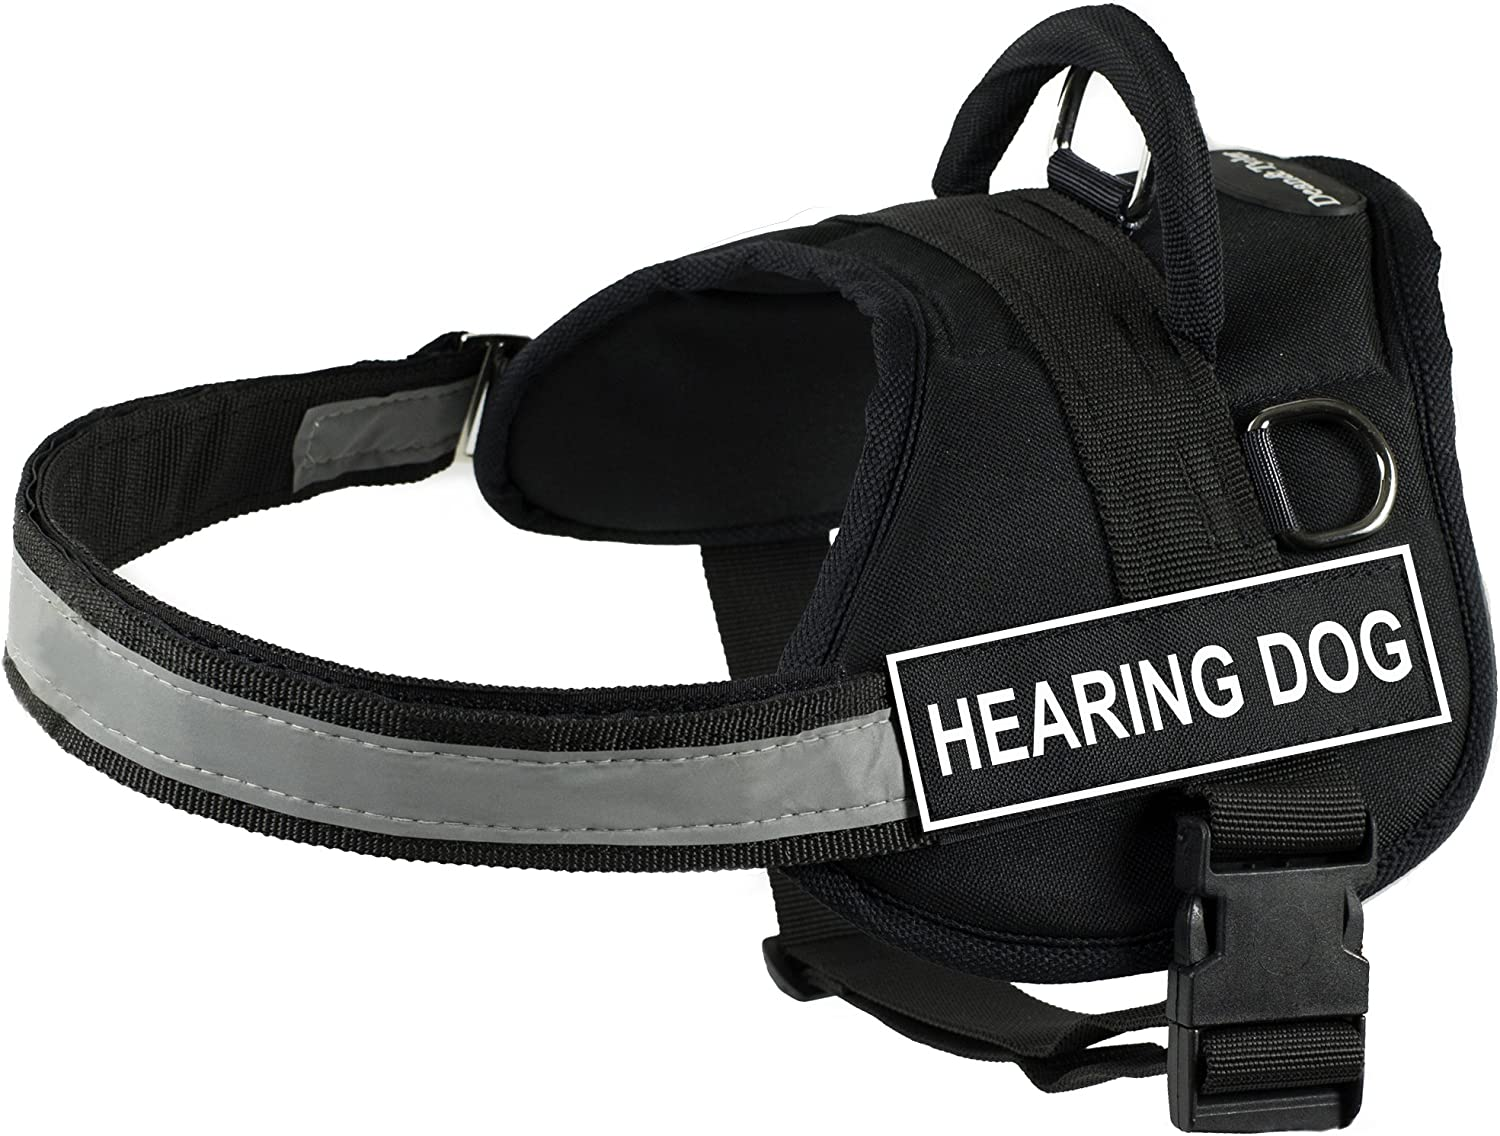 DT Works Harness 4 years warranty Hearing Dog Black White - Max 61% OFF XX-Small Fits Girt